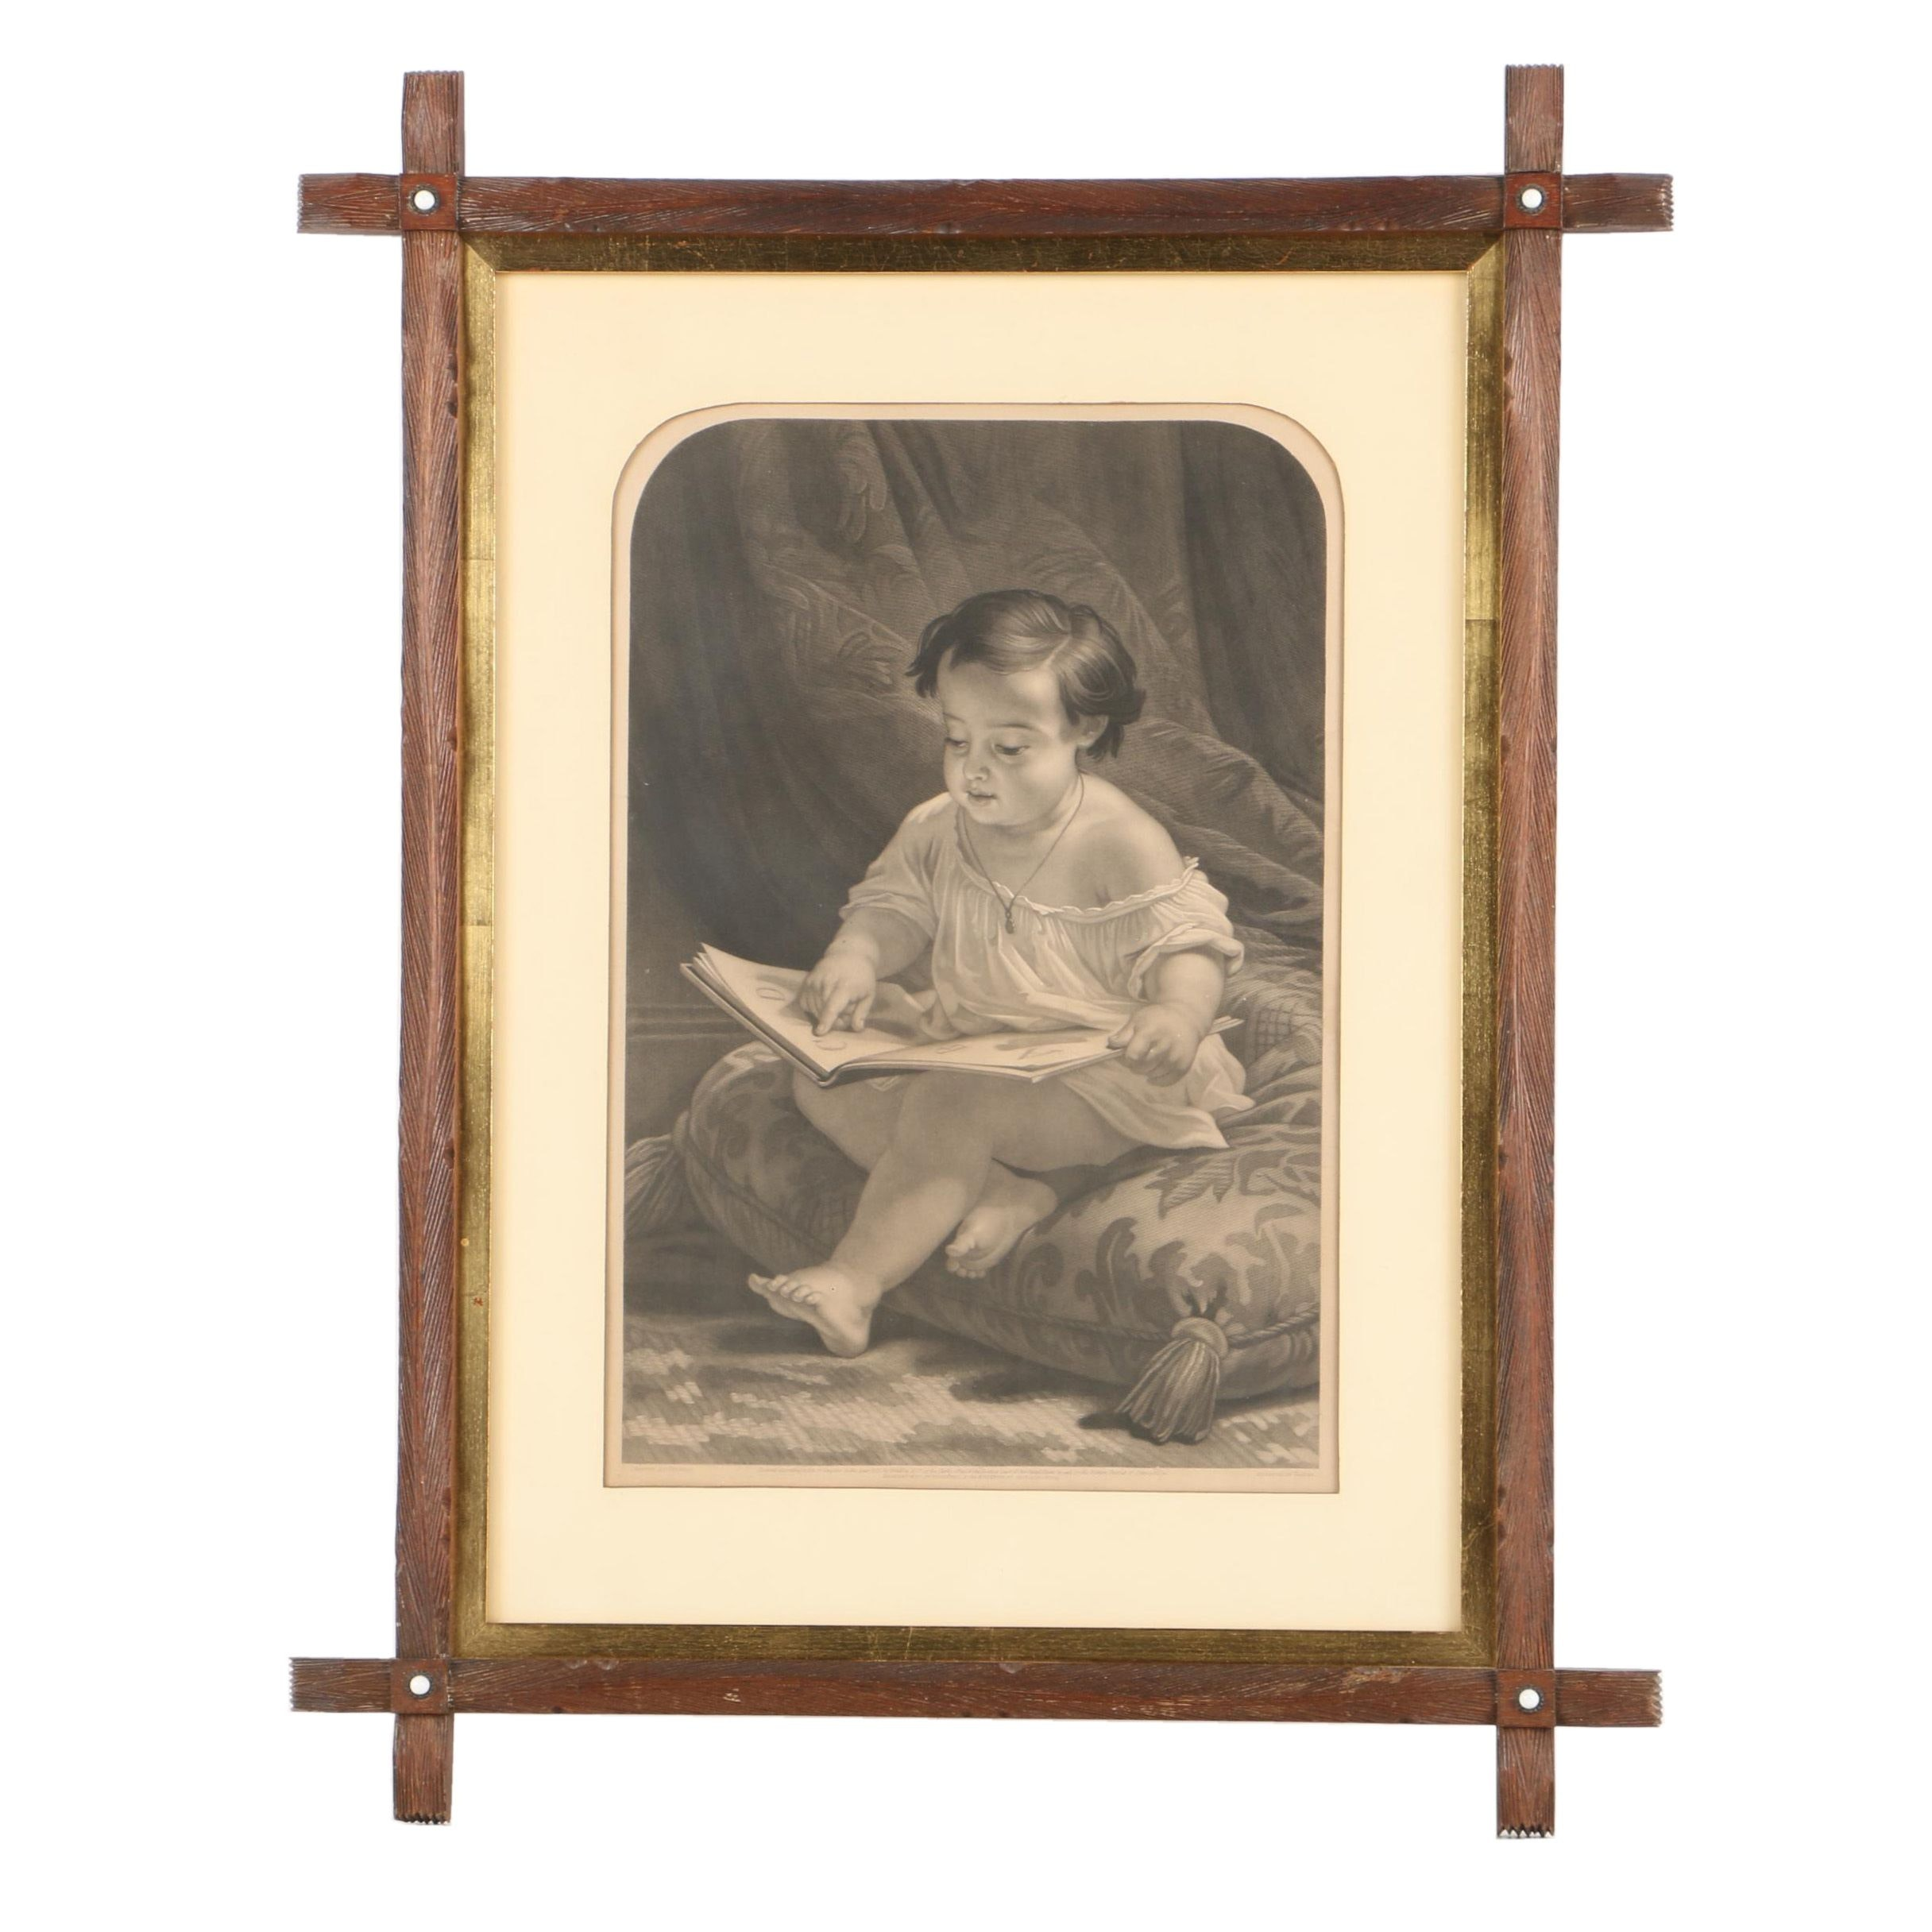 Engraving on Paper After Holfeld Portrait of Child Reading